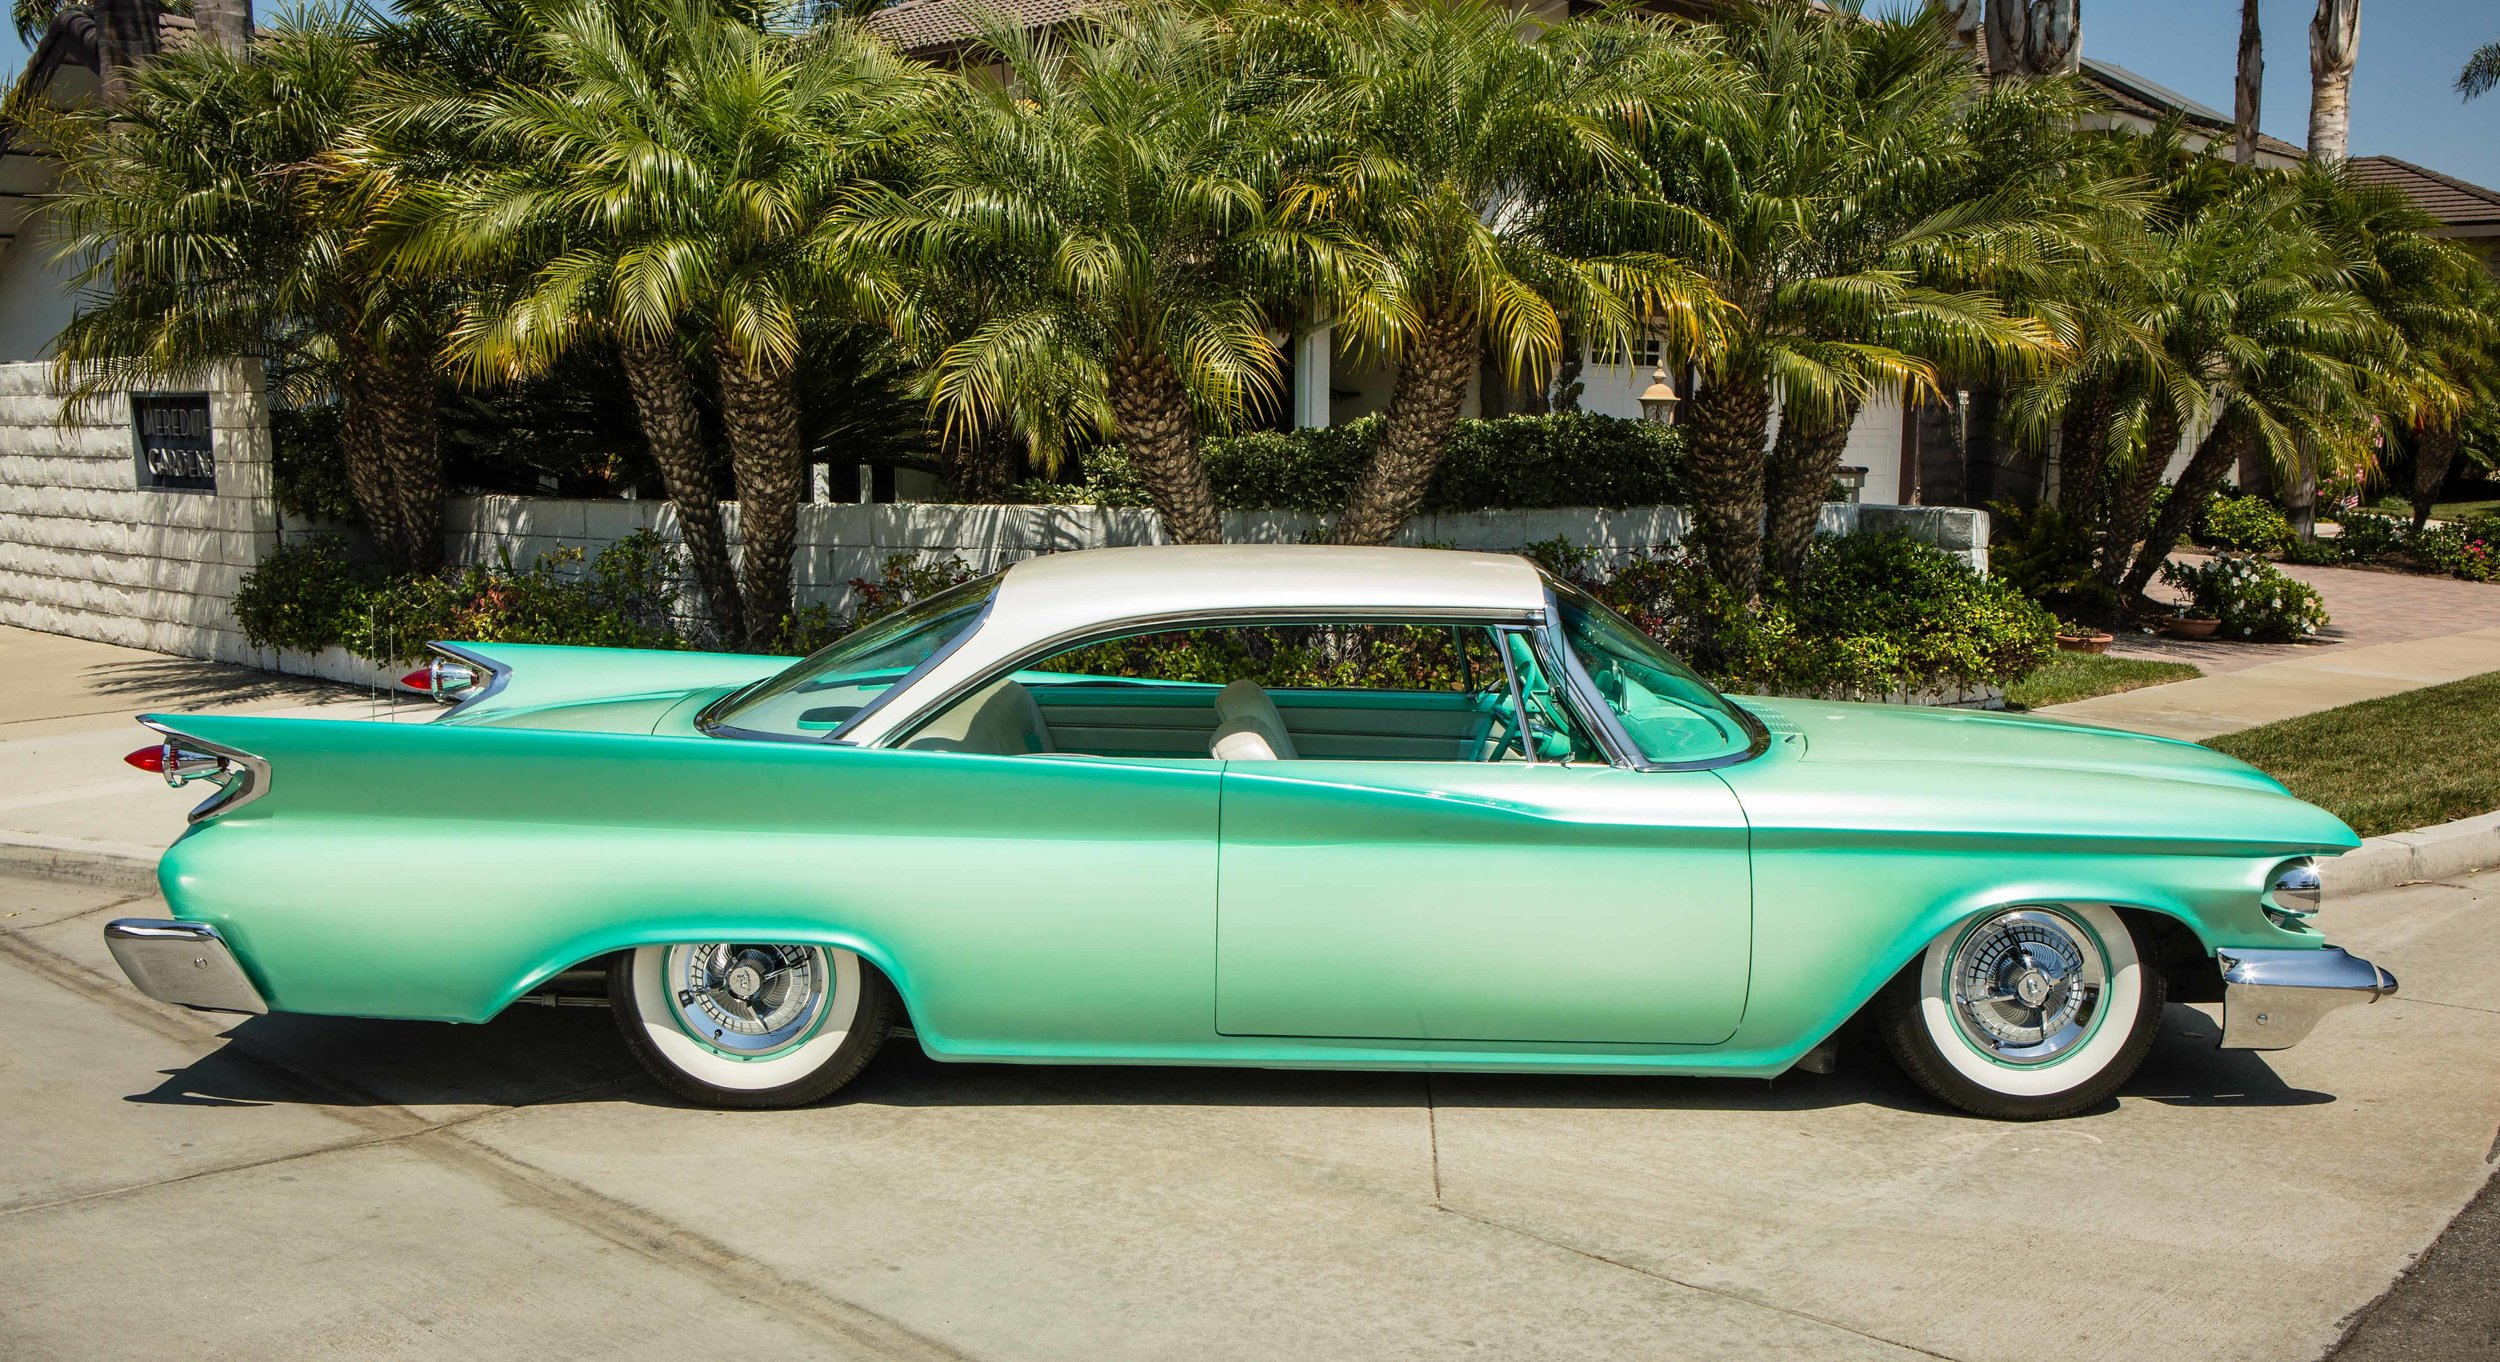 Anaheim Rod and Custom 1960 Desoto Island Girl_-4.jpg